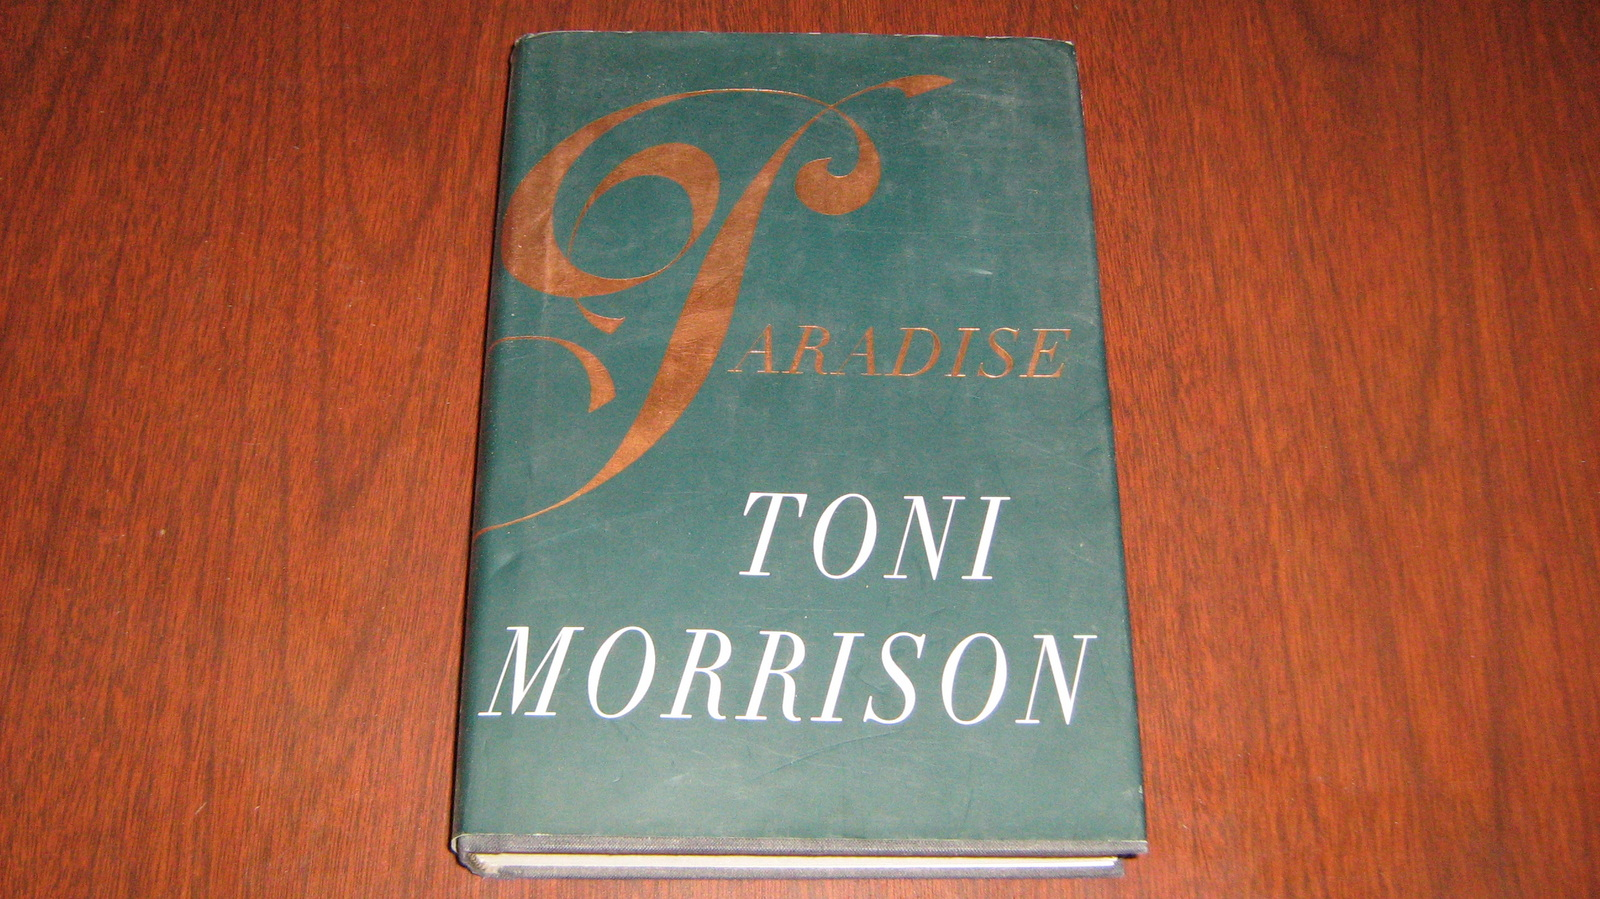 an in depth analysis of the novel the bluest eye by toni morrison Upon reading toni morrison's novel, the bluest eye  more fundamental level than a simple stylistic analysis of morrison's prose and adding depth to.